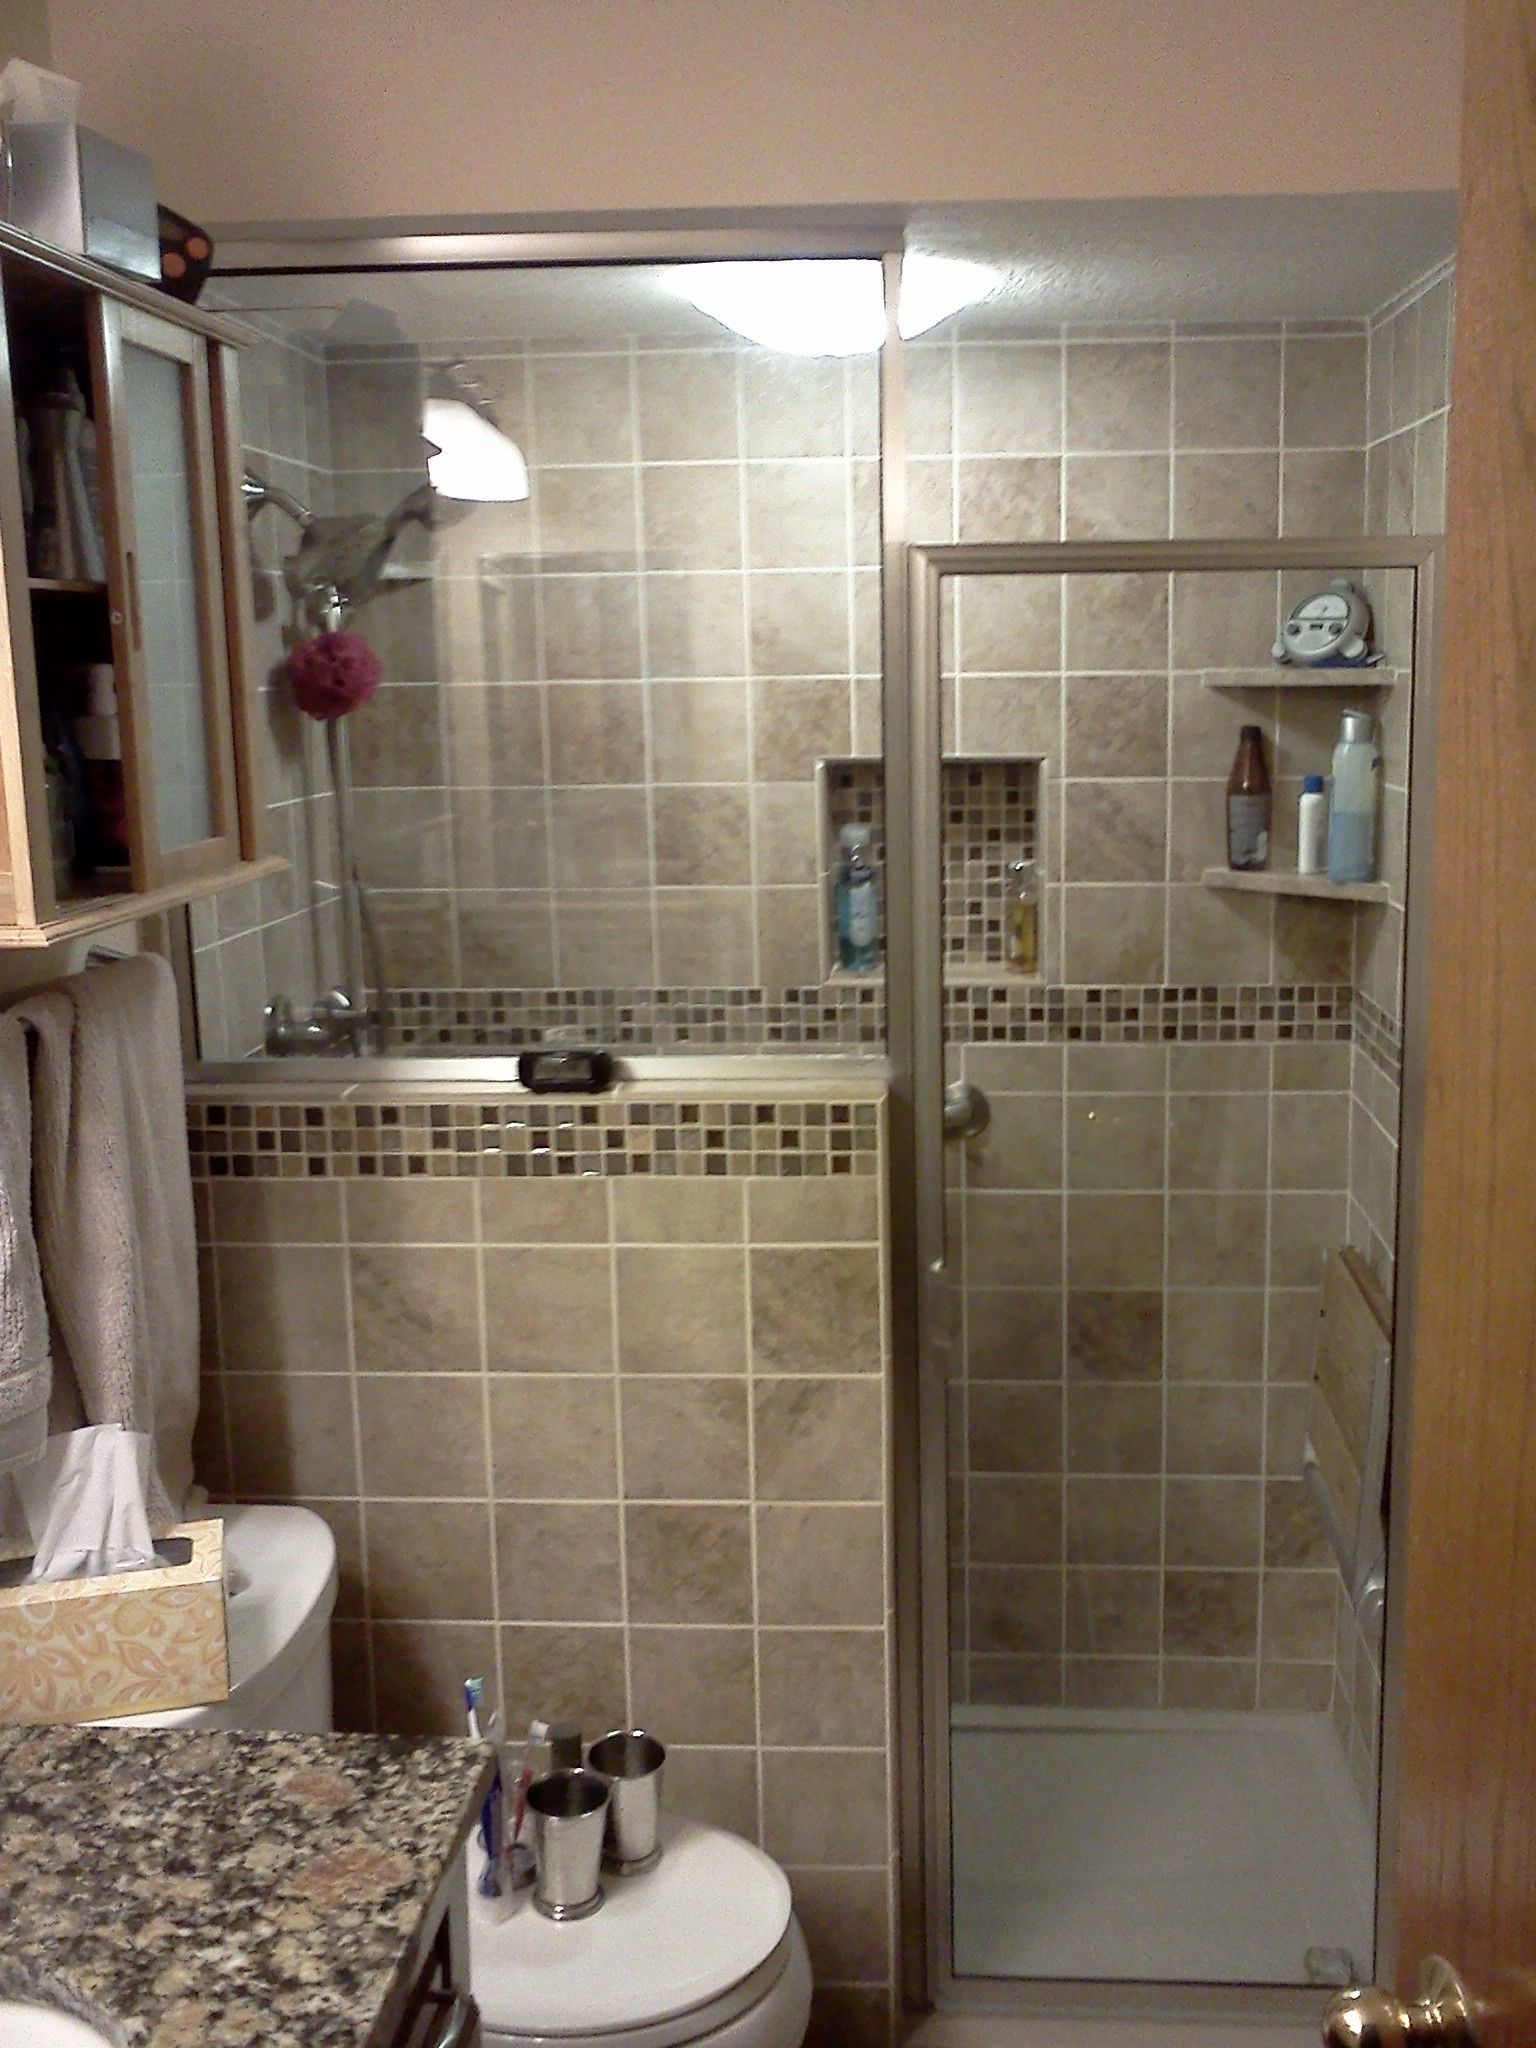 Dusche Ytong Bathroom Remodel Conversion From Tub To Shower With Privacy Wall